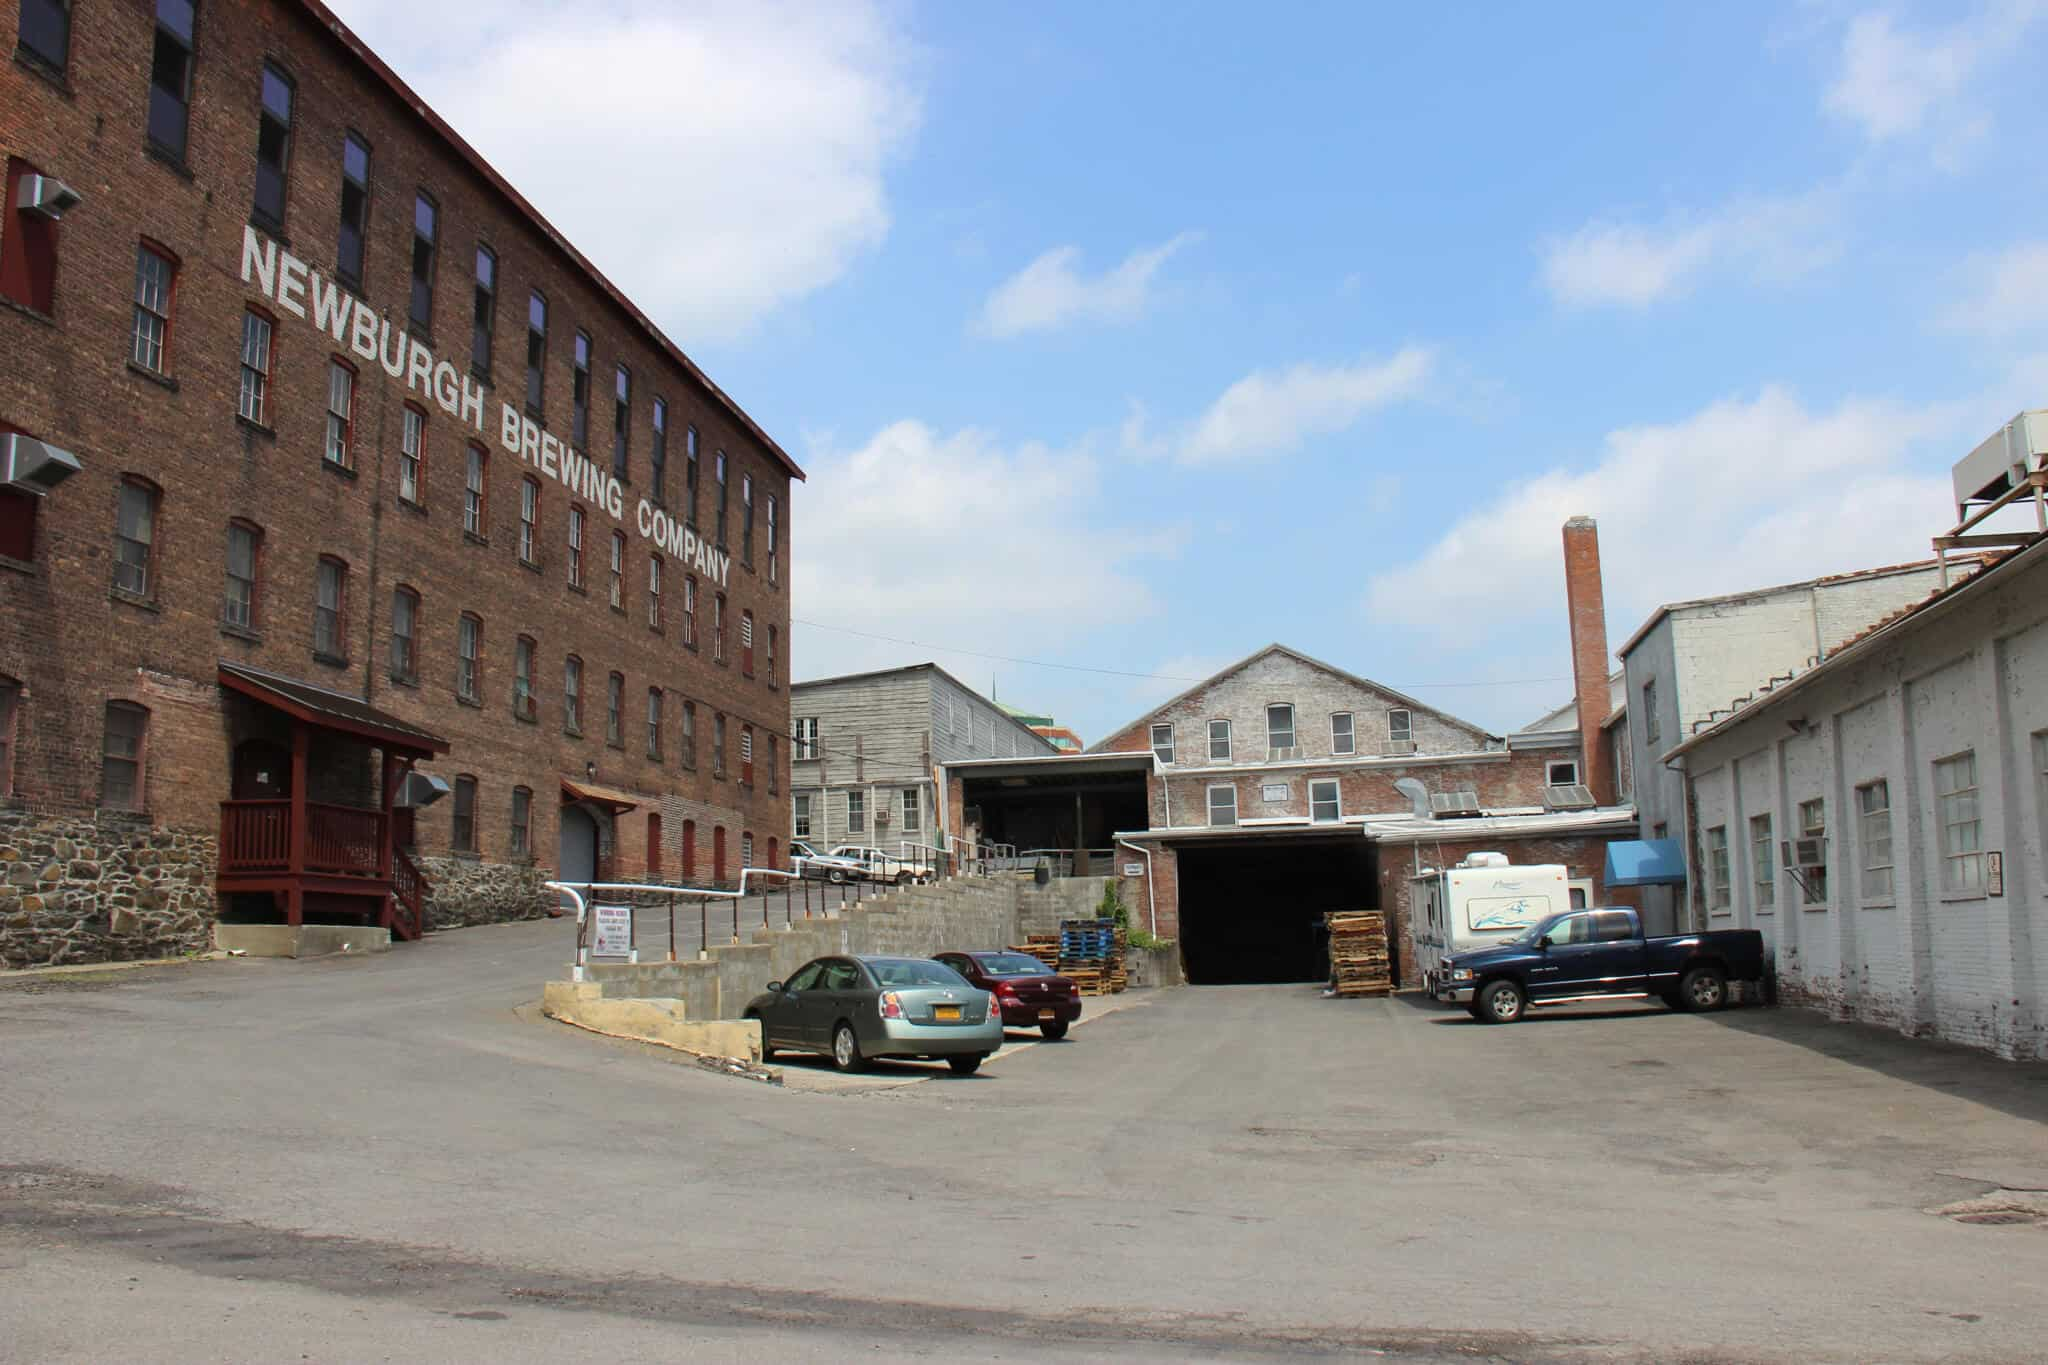 !00,000 square foot warehouse in Newburgh, NY